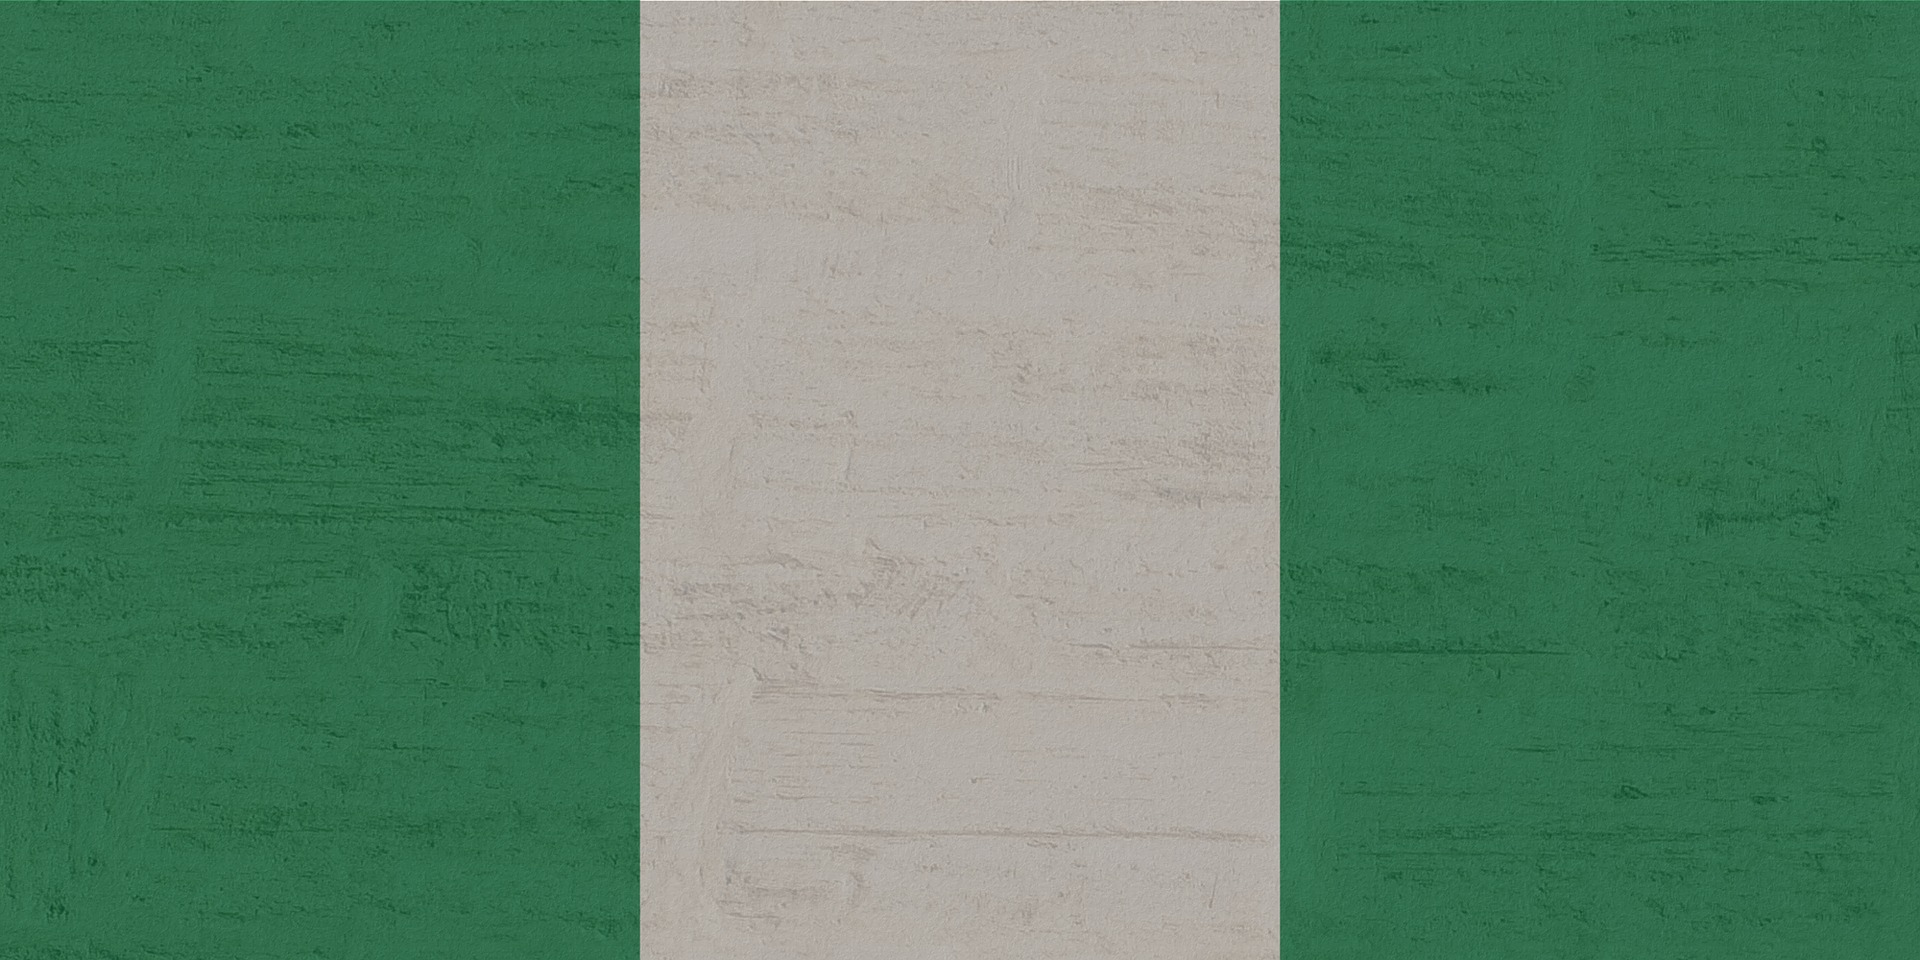 Image of the flag of Nigeria